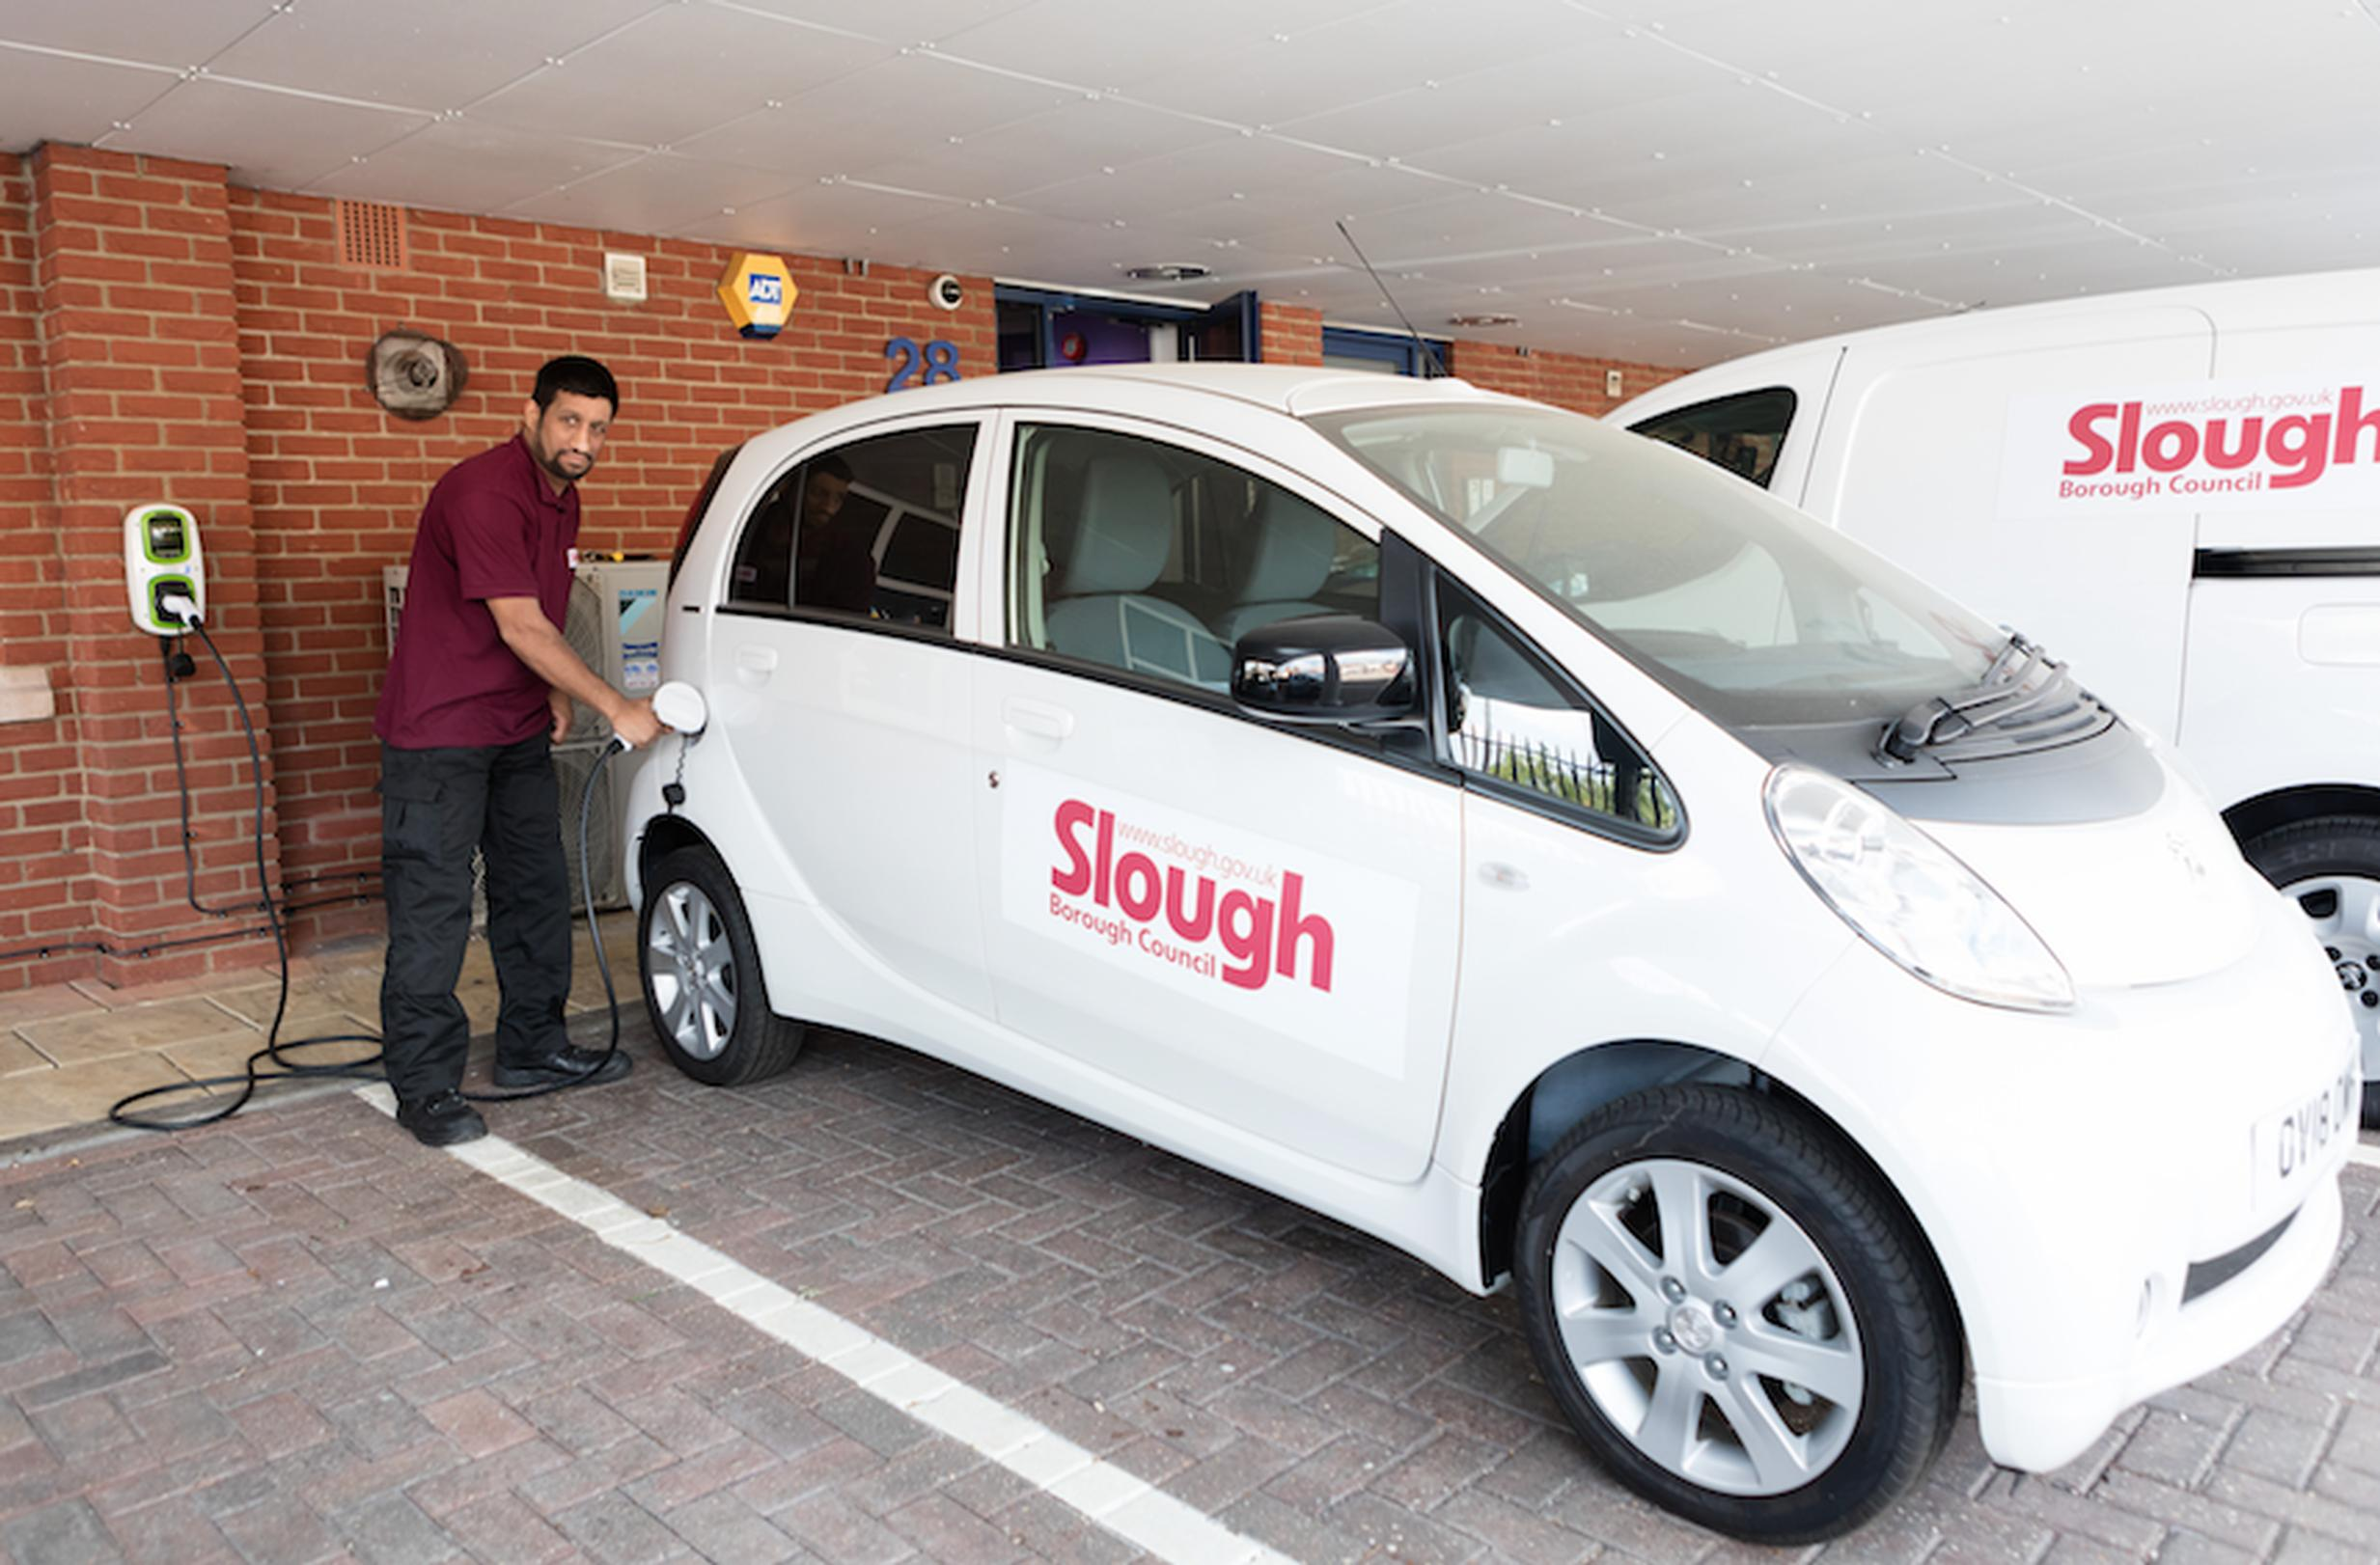 Indigo will be using electric vehicles on its Slough contract